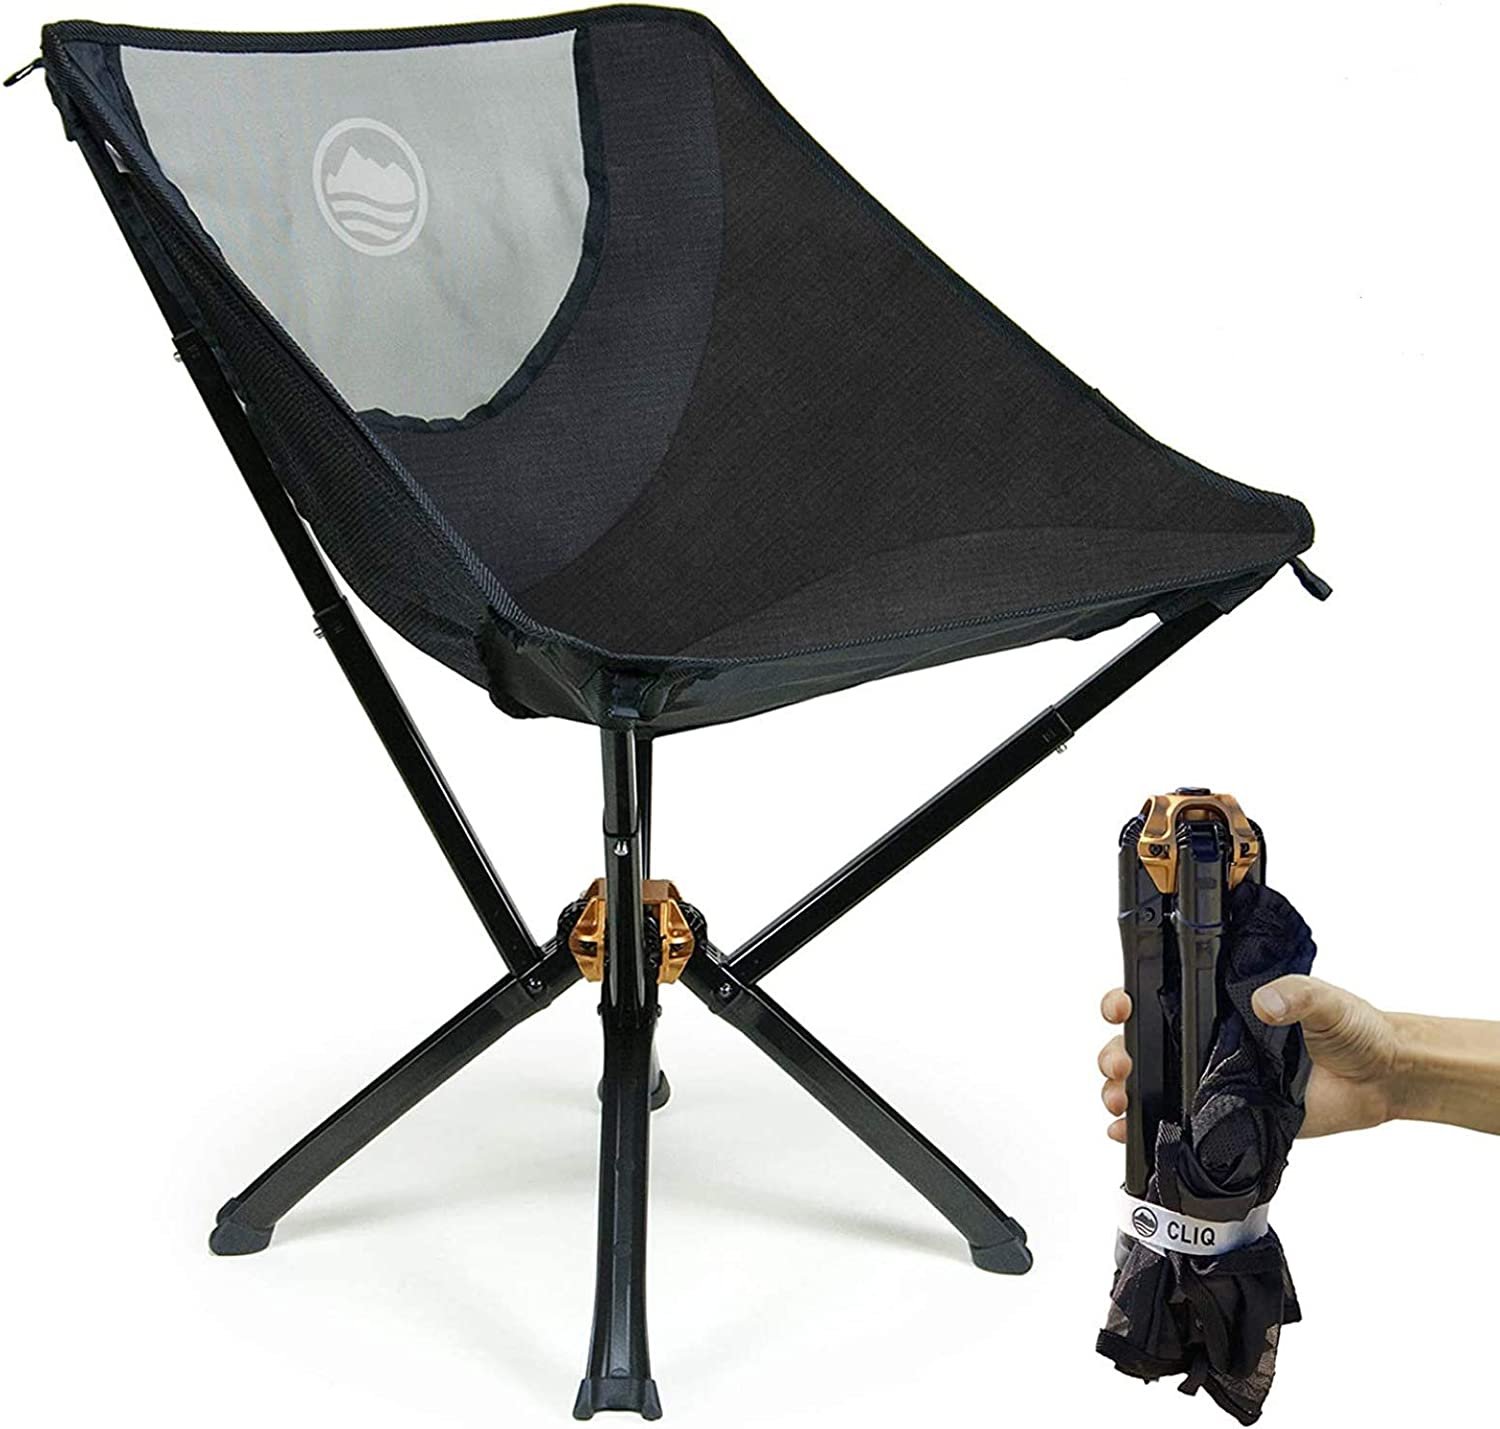 Cliq Store Camping Chair - Most Crowdfunding Funded in Cheap mail order specialty store Portable